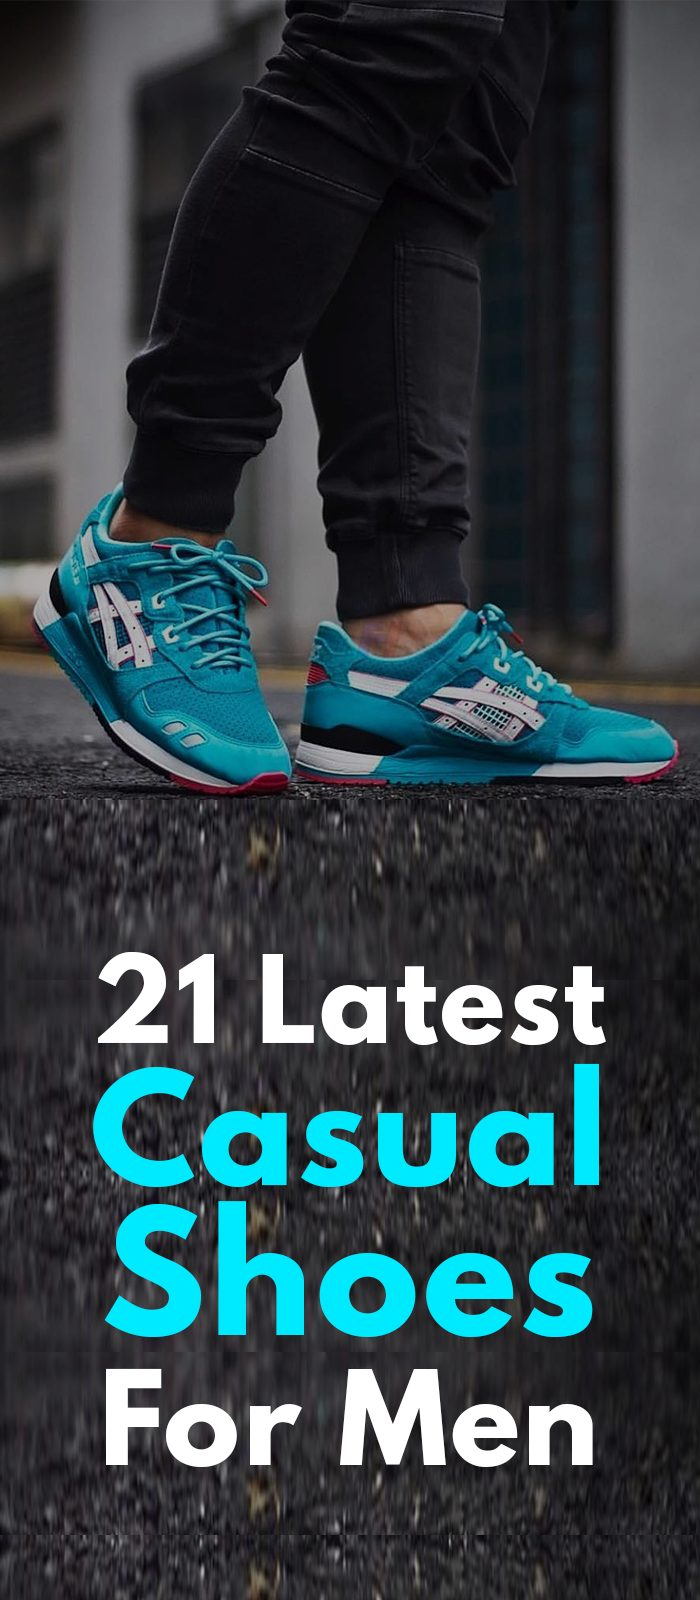 Latest Casual Shoes For Men